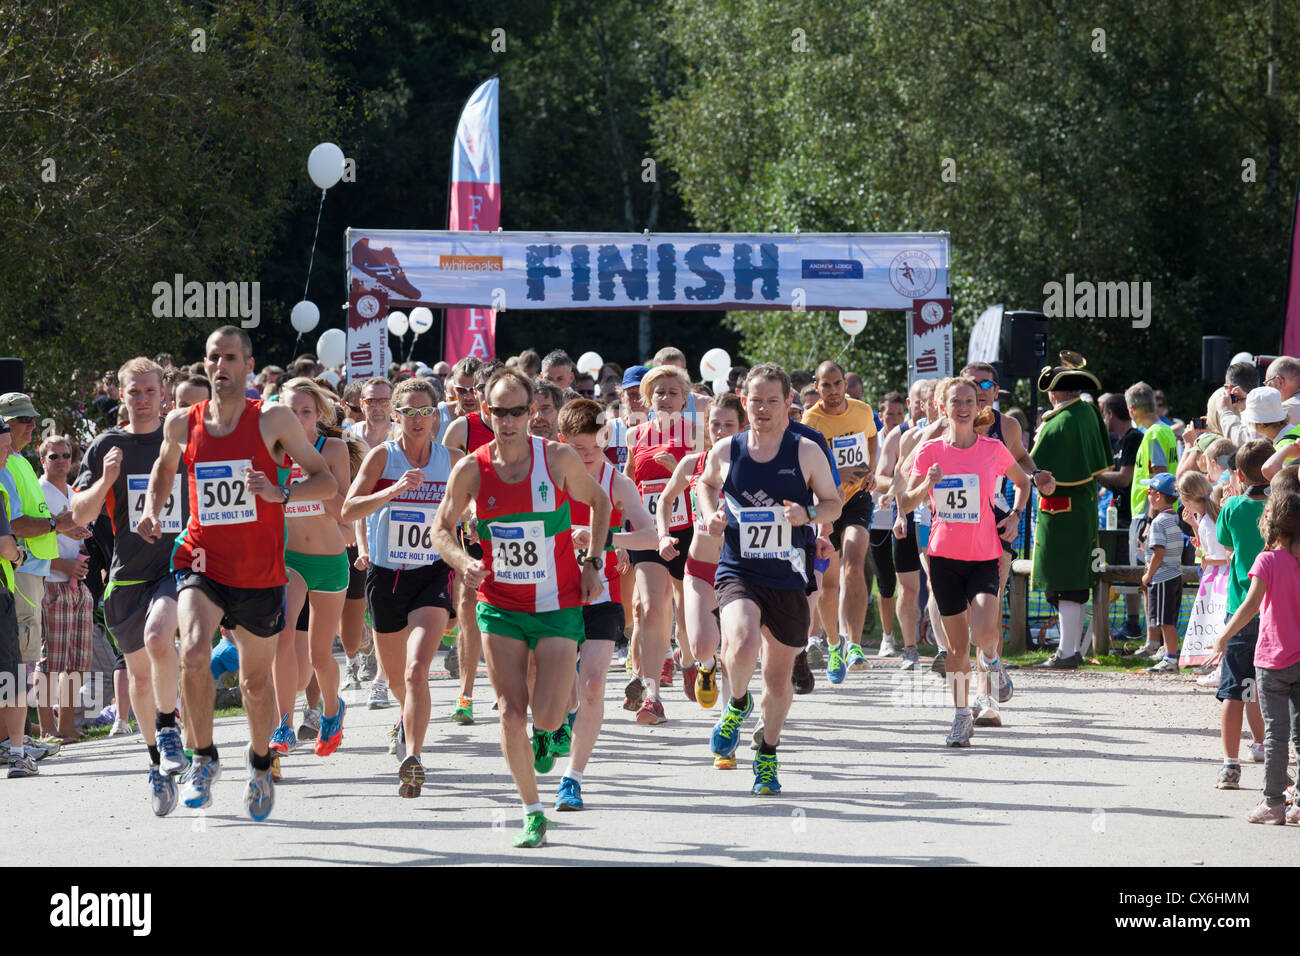 Runners starting the 10k and 5k run at Alice Holt Forest with Finish sign. - Stock Image